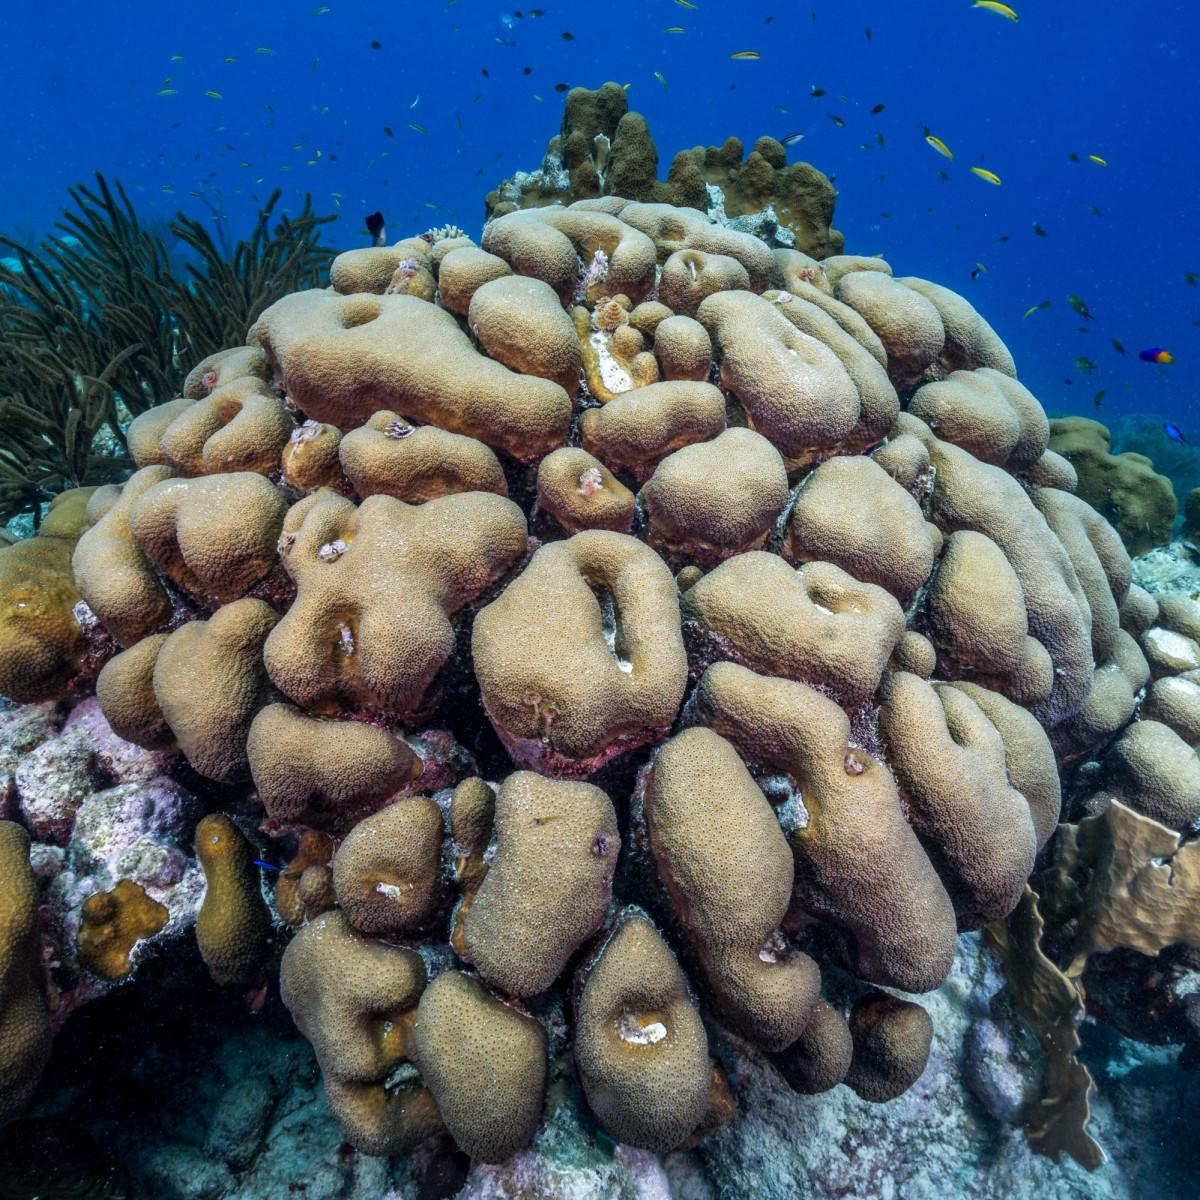 Reef Renewal Foundation Bonaire - A 'boulder' approach to reef restoration 1